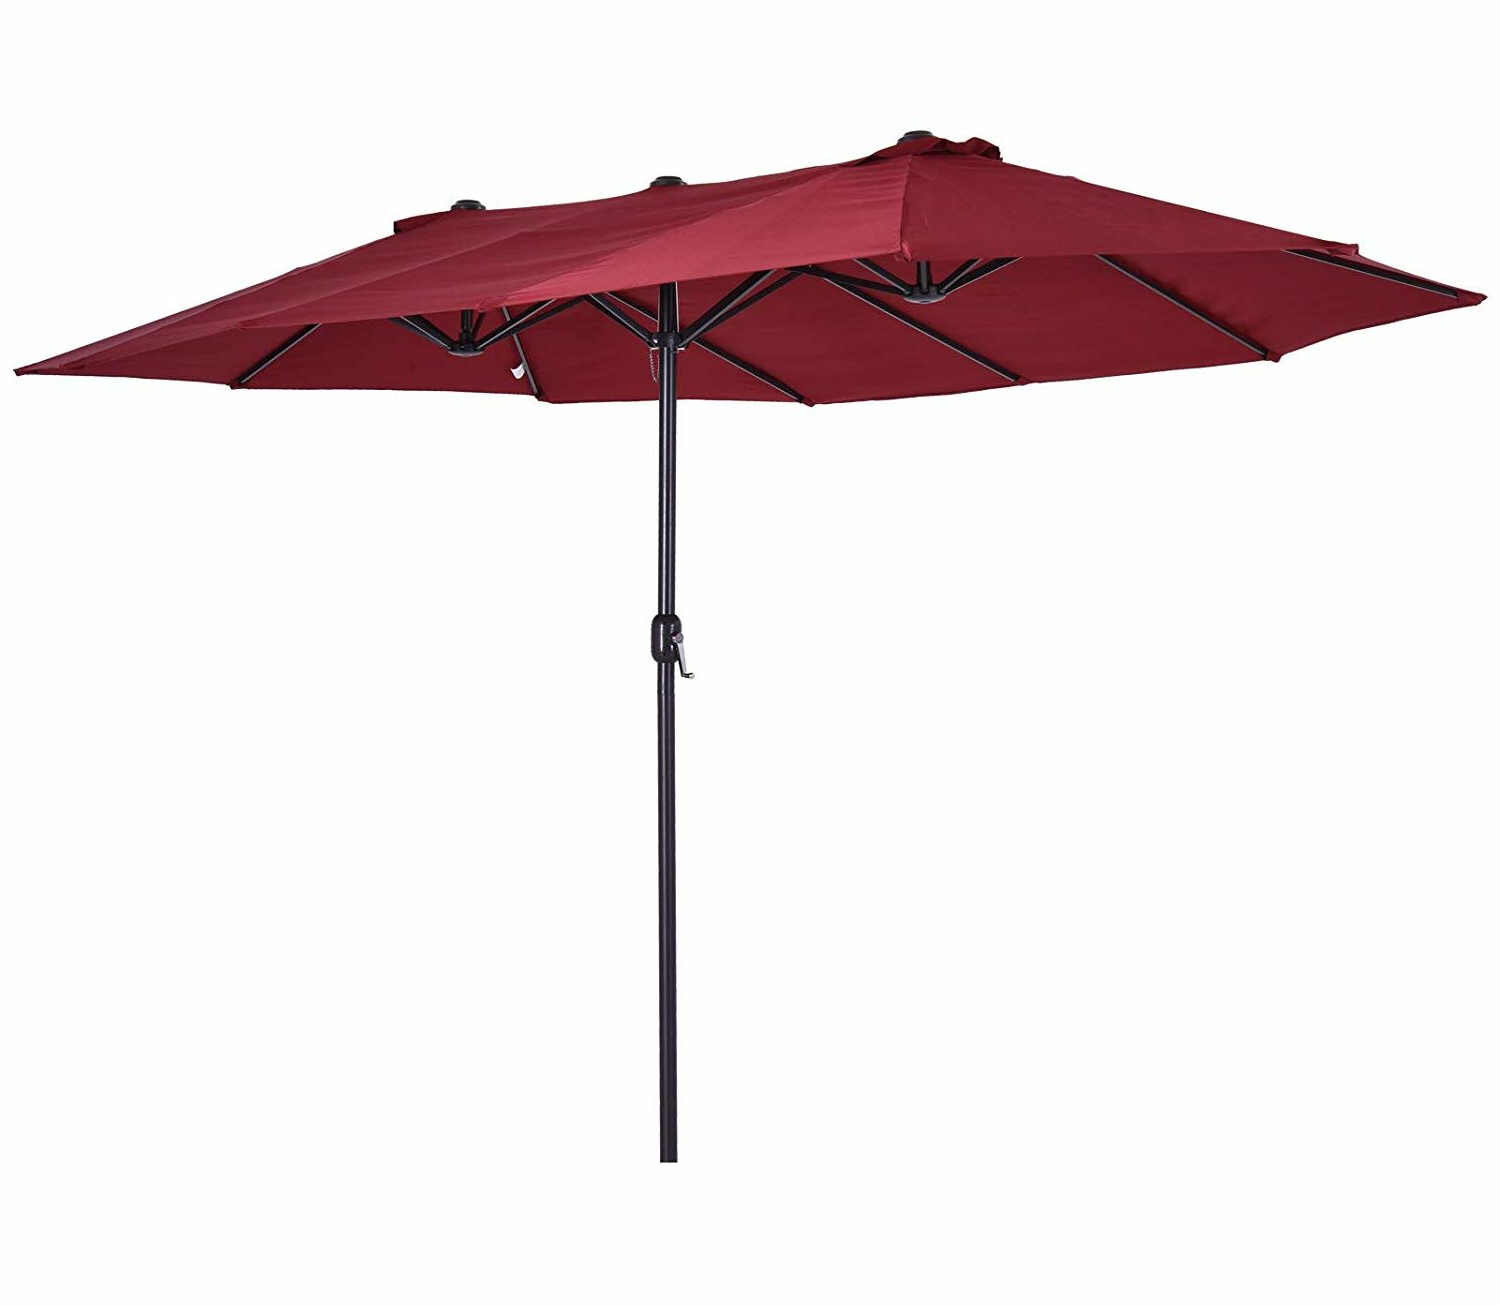 Famous Lagasse Market Umbrellas Intended For Solihull 9 X 15 Rectangular Market Umbrella (View 8 of 20)